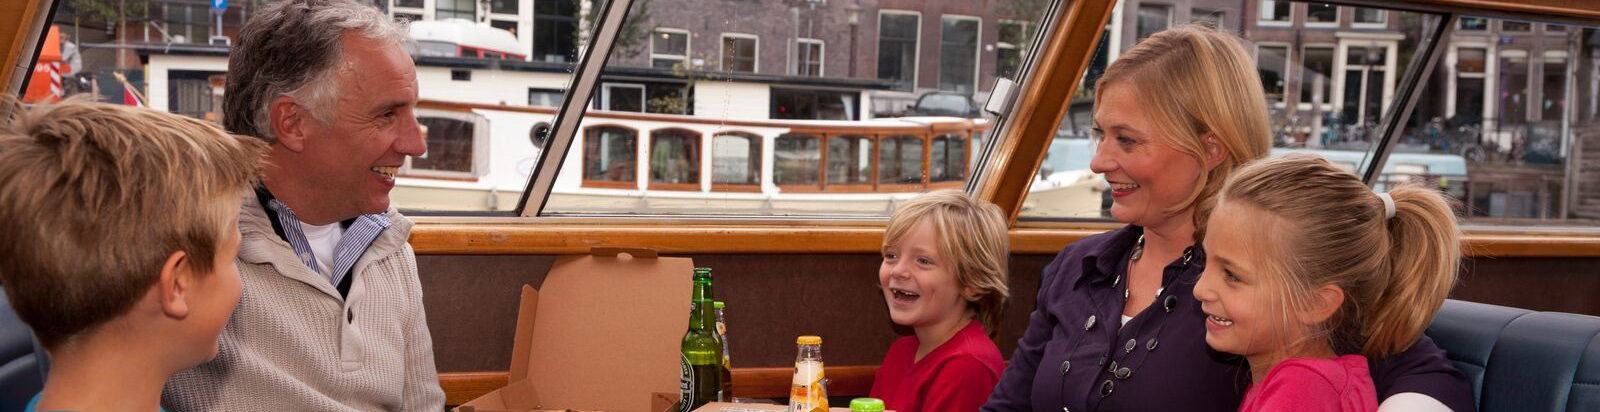 Canal Pizza Cruise Amsterdam